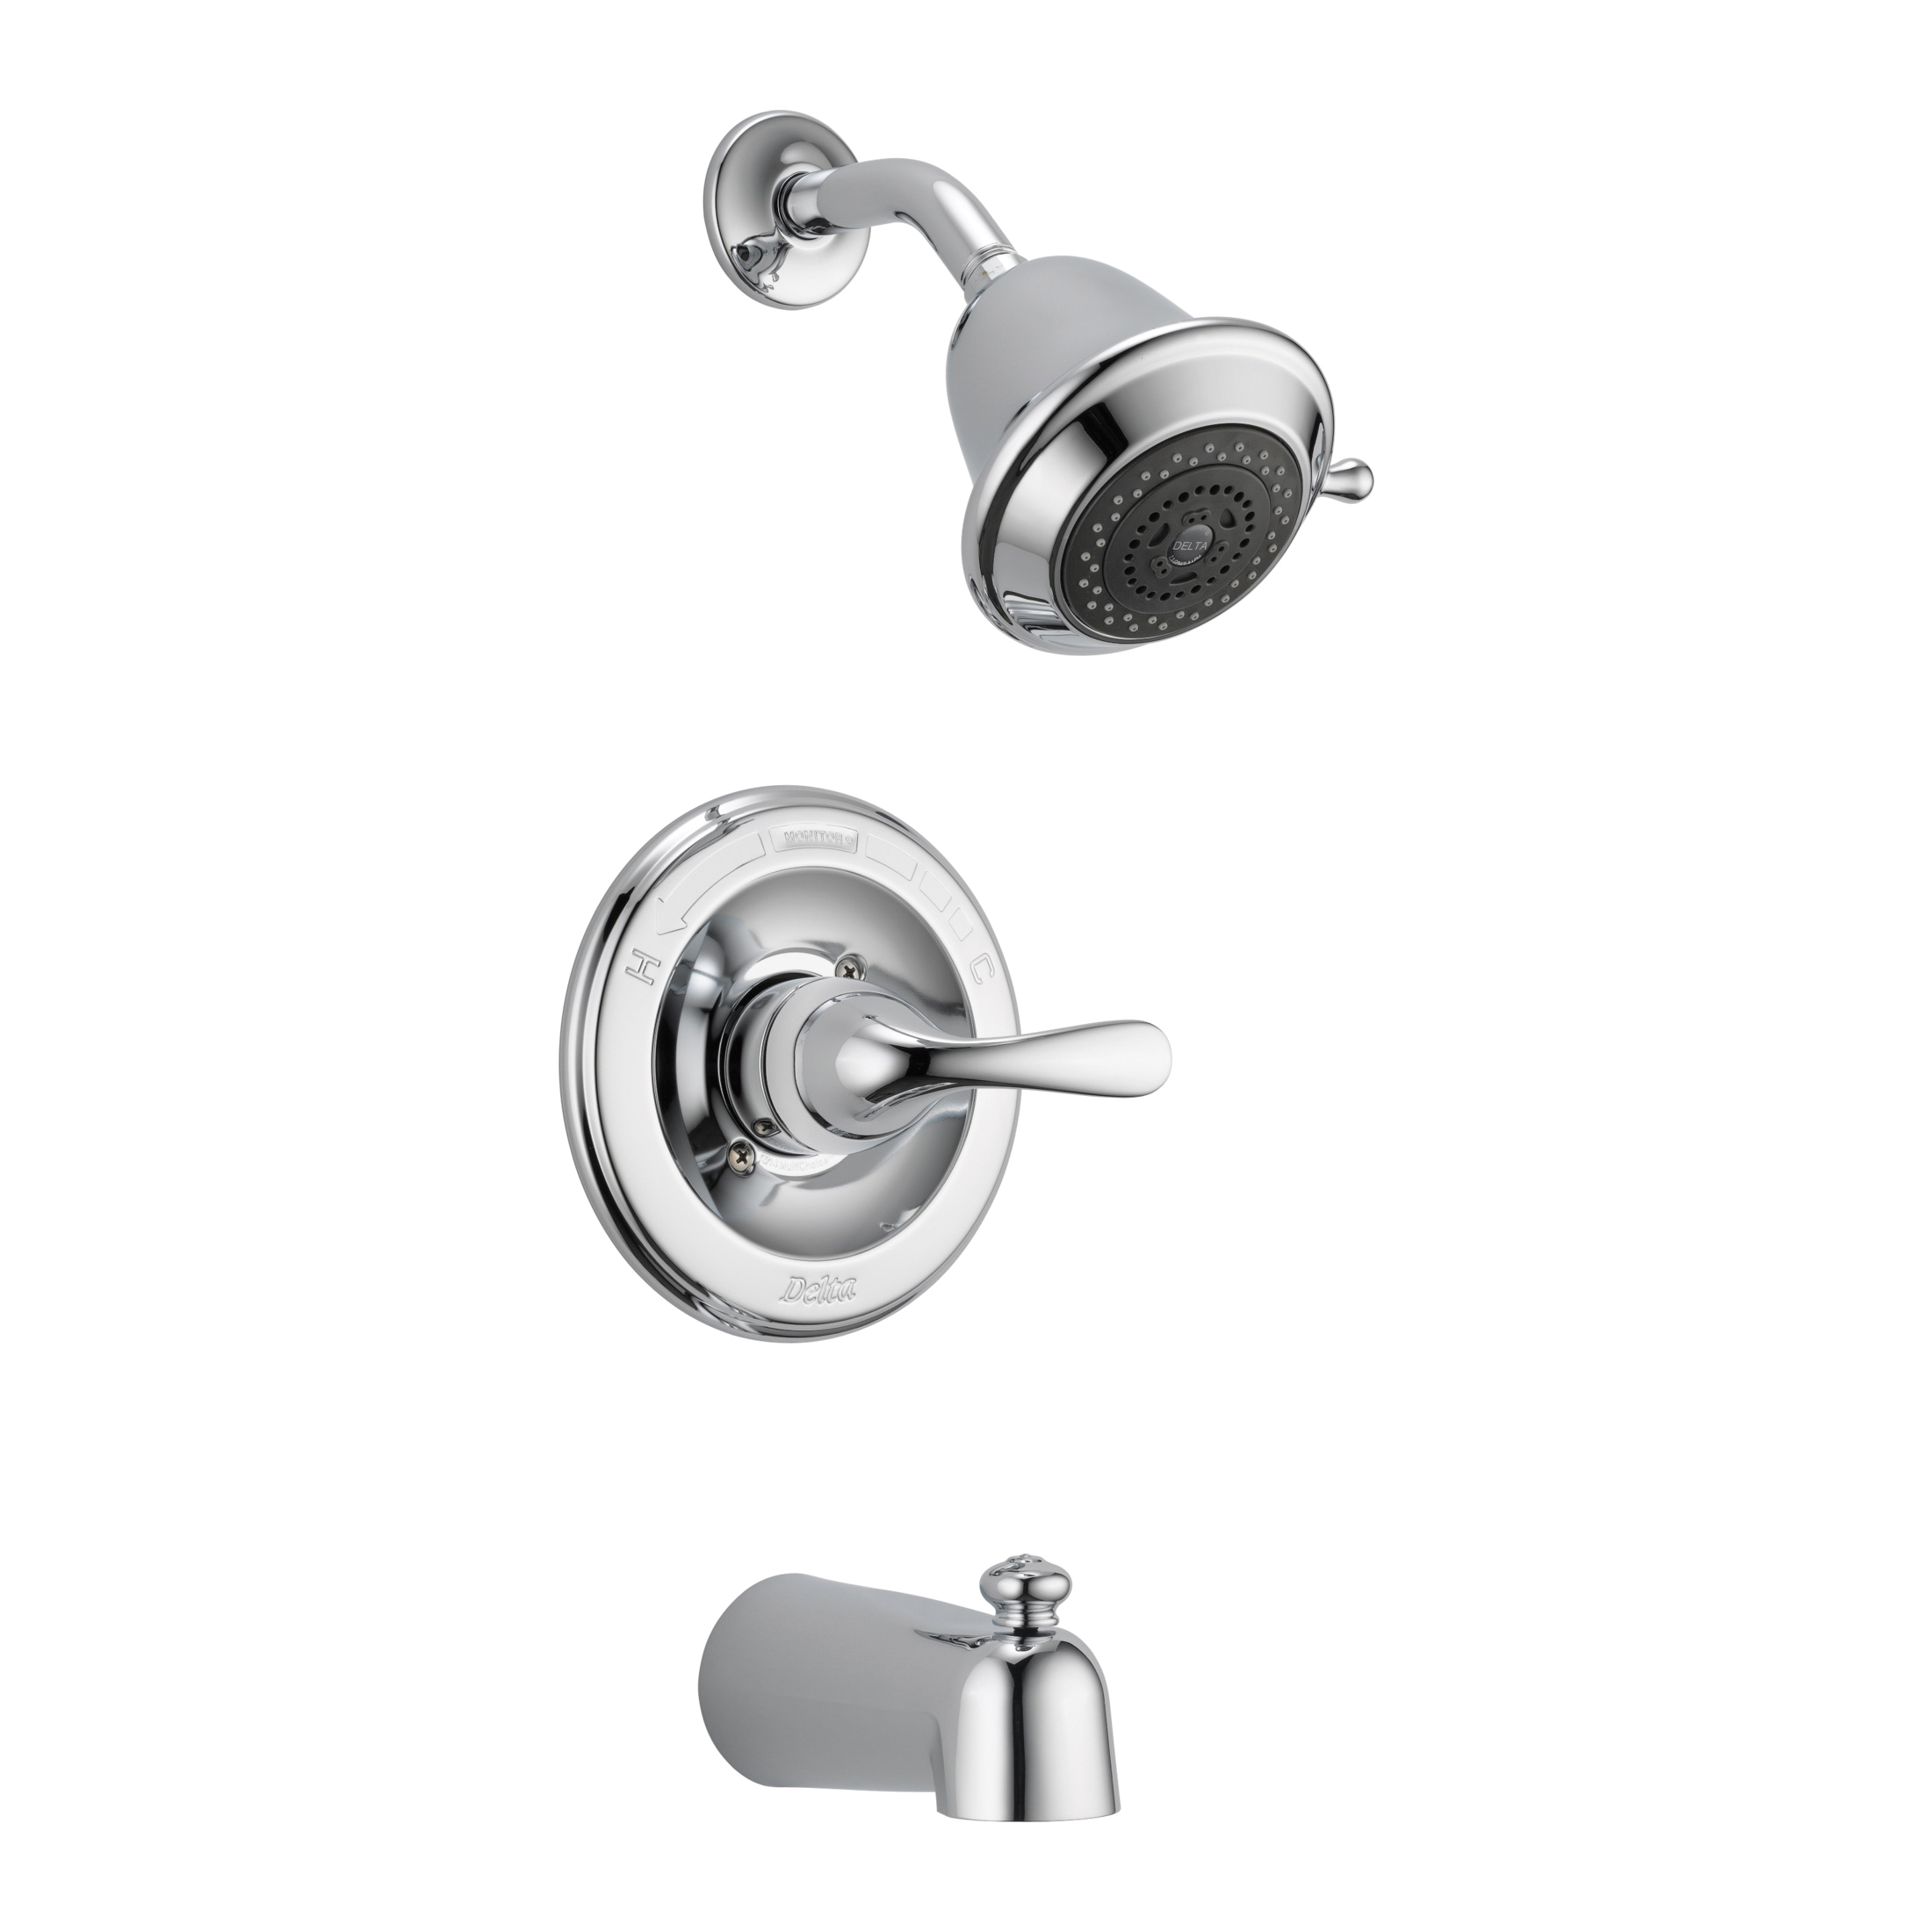 DELTA® T13420-SHCCER Monitor® 13 Tub and Shower Trim, 1.75 gpm Shower, Hand Shower Yes/No: No, Chrome Plated